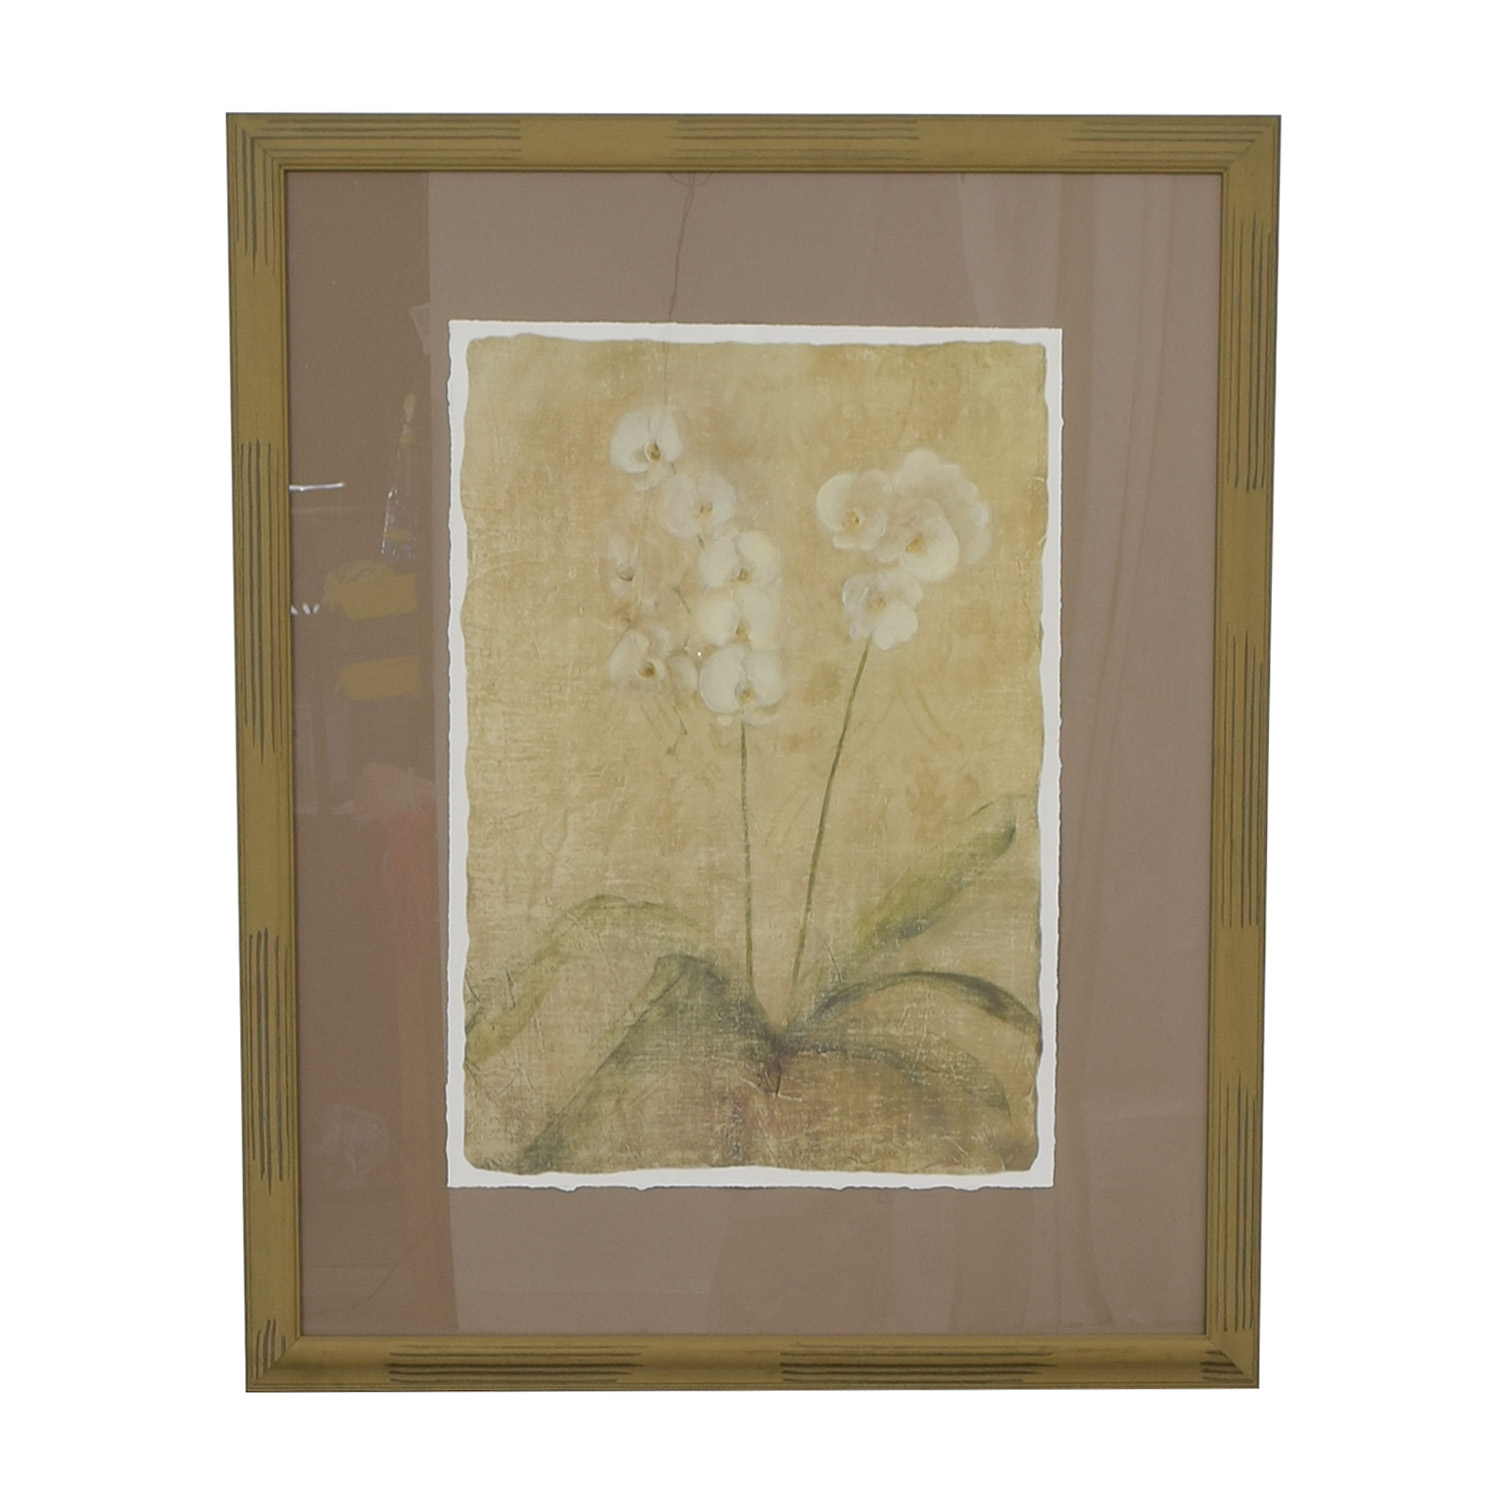 Rumrunner Home Rumrunner Home Floral Artwork discount